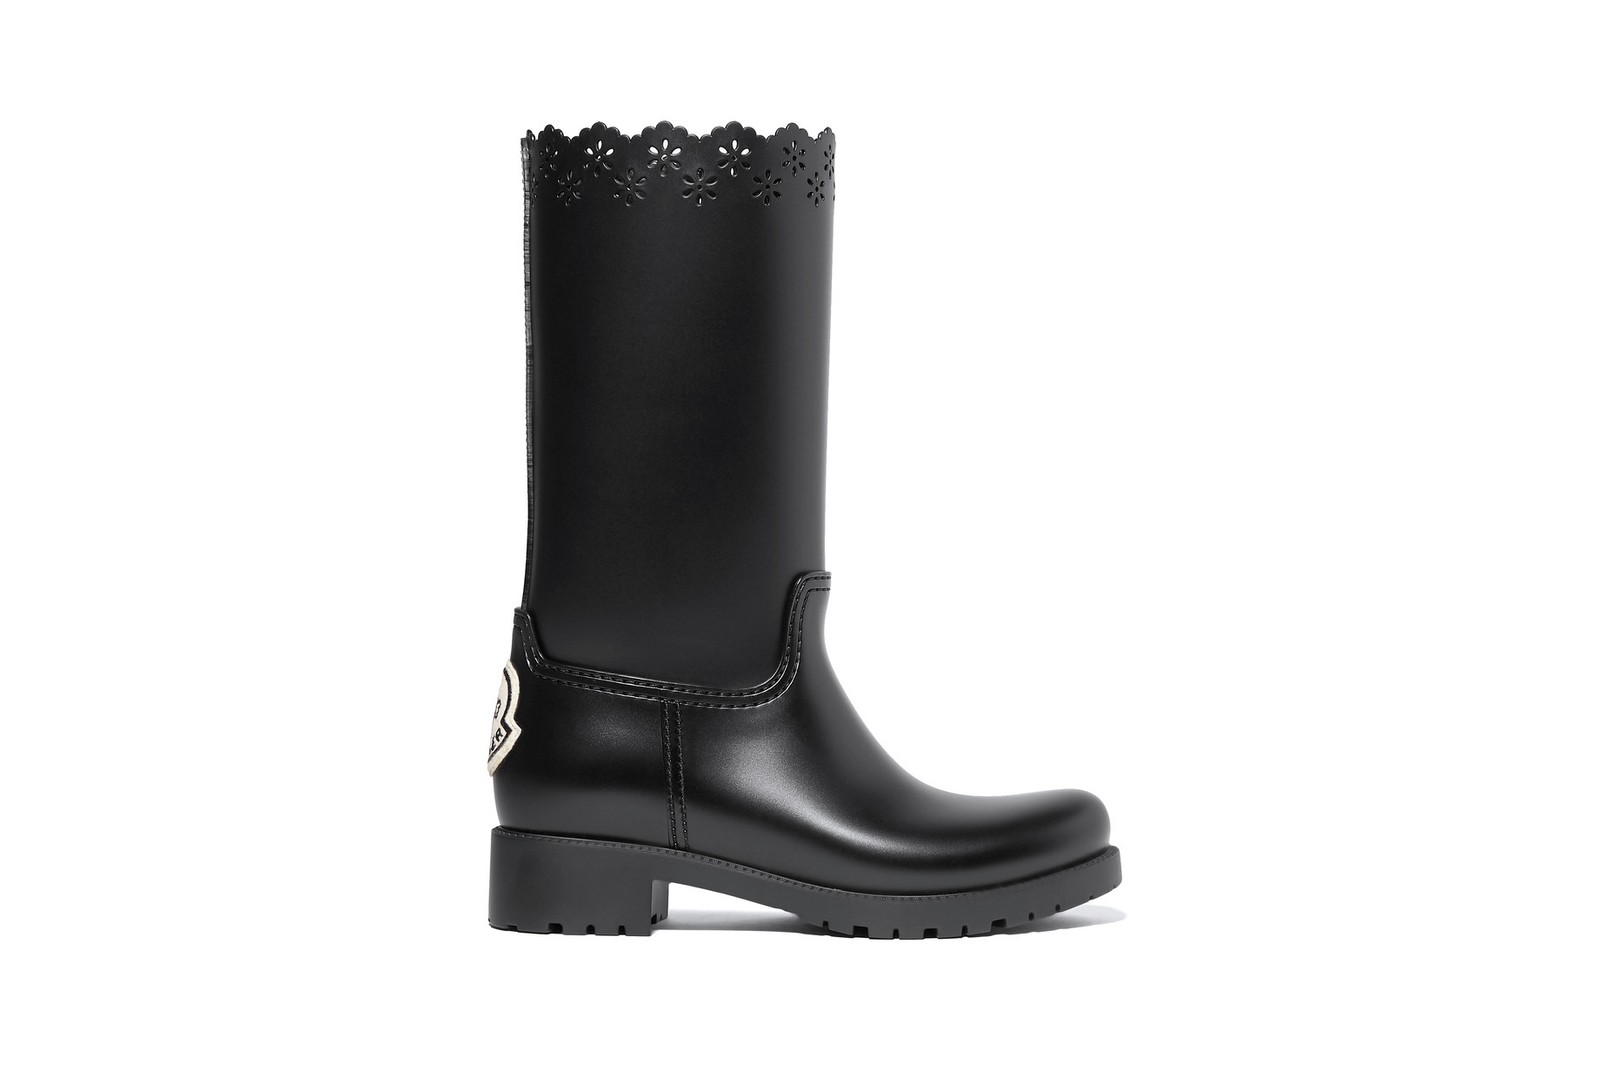 Best Stylish Waterproof Winter Boots Gucci Converse Chloe